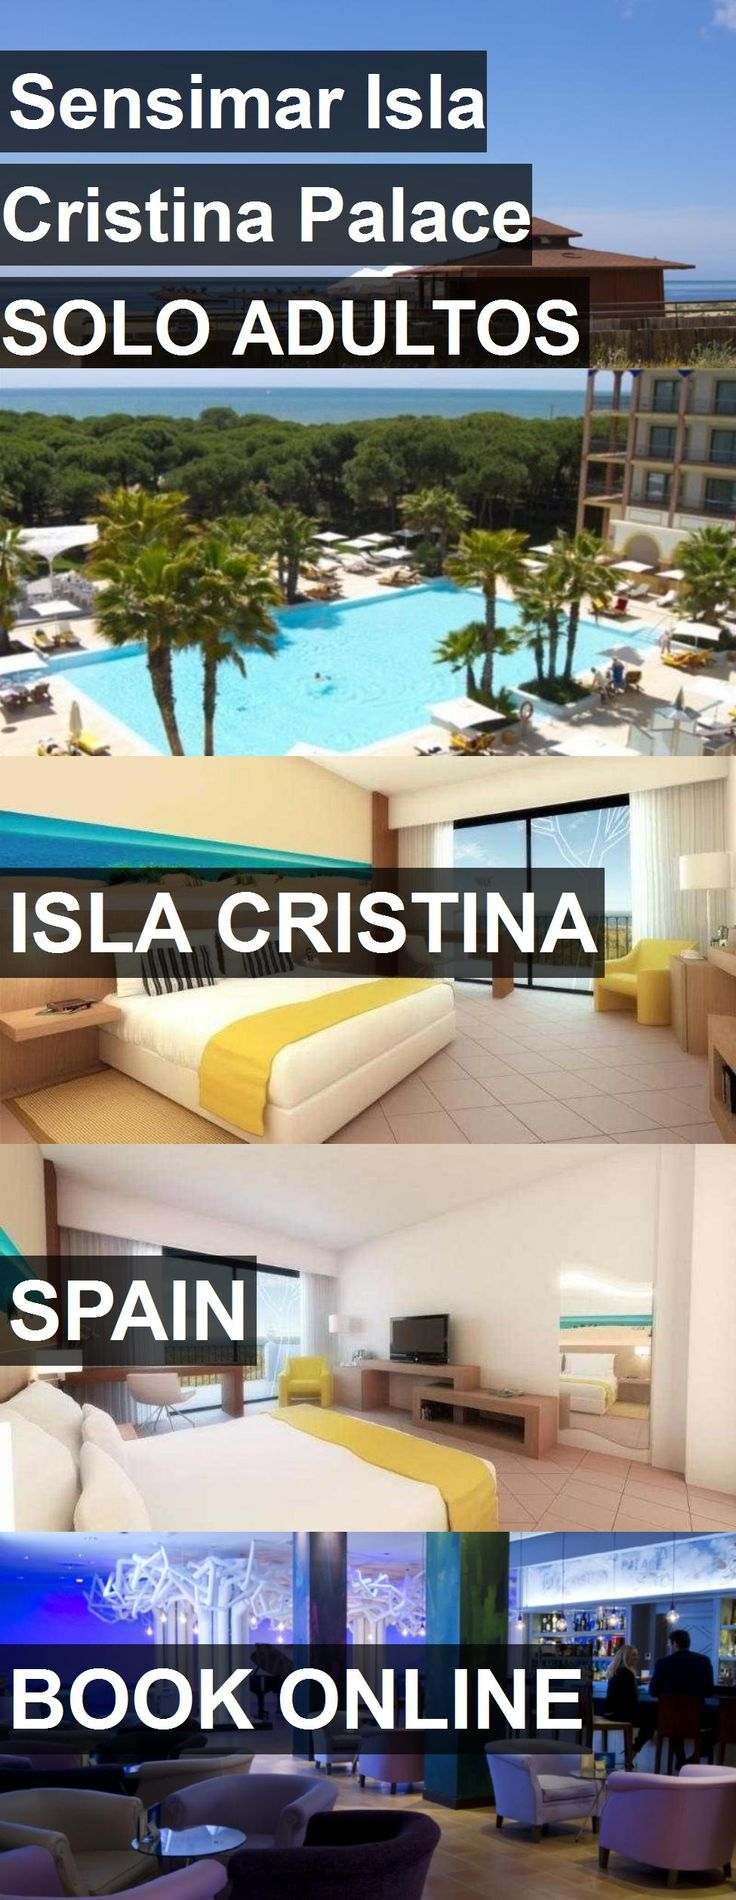 Hotel Sensimar Isla Cristina Palace SOLO ADULTOS in Isla Cristina, Spain. For more information, photos, reviews and best prices please follow the link. #Spain #IslaCristina #travel #vacation #hotel